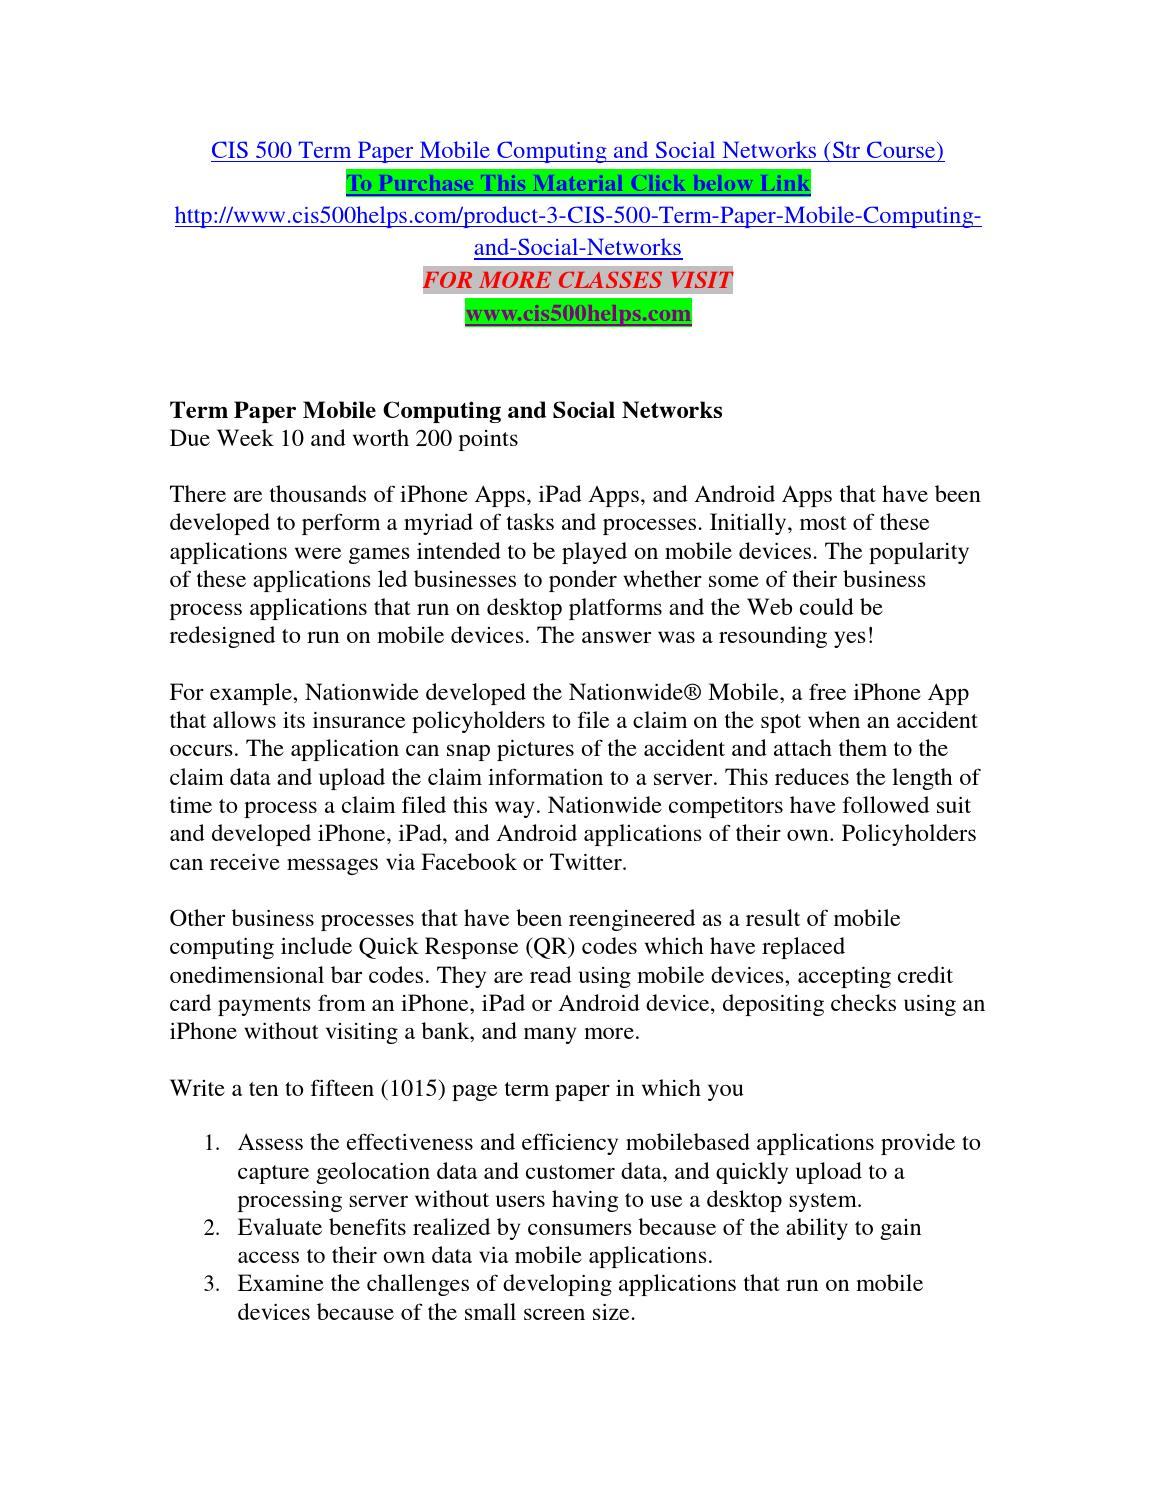 term paper mobile computing and social networks Mobile computing and social networks 2 this paper evaluates effectiveness and efficiency that mobile-based applications offer in regard to the geolocation system and users' data.